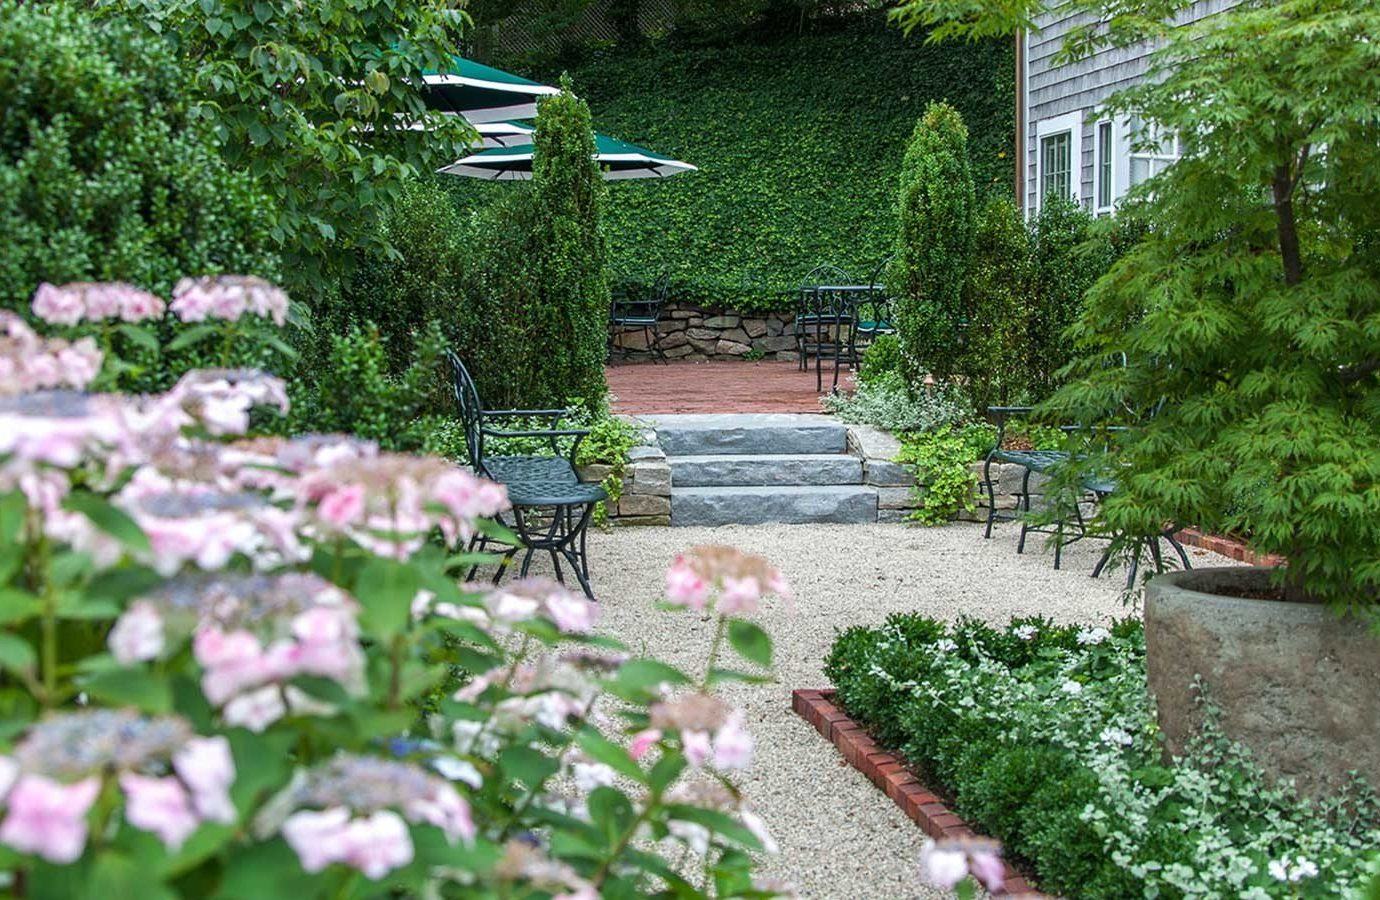 Hotels tree outdoor ground grass Garden flower plant walkway yard flora house backyard botanical garden landscape landscaping groundcover outdoor structure bushes stone Courtyard lawn spring gardening shrub surrounded